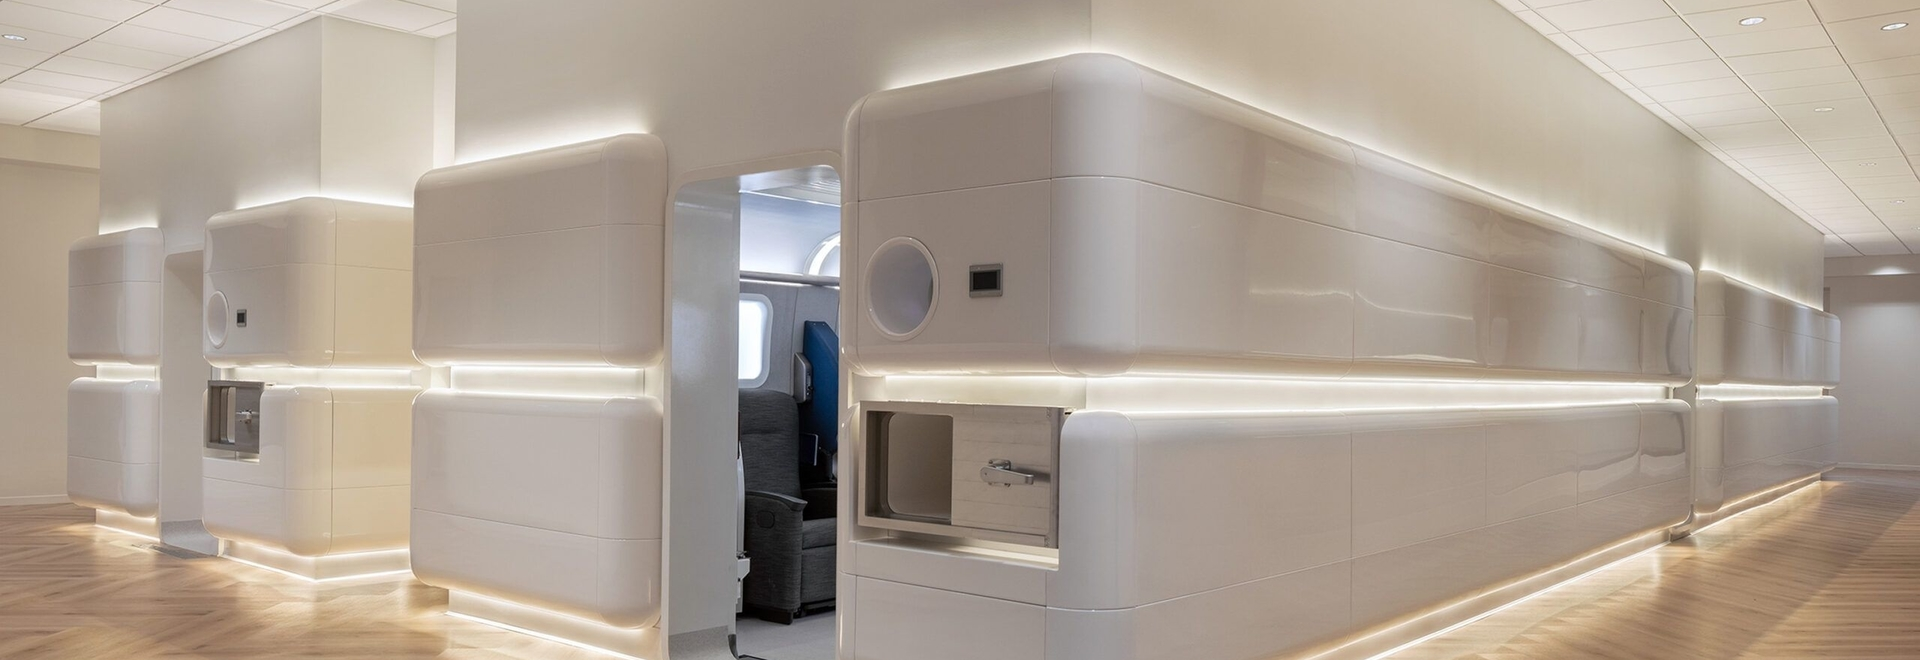 The Aviv Clinic features an aesthetic inpired by first-class airline service, with surfaces chosen for a stramlined, modern look. Here, the oxygen therapy chambers communicate a journey to better h...